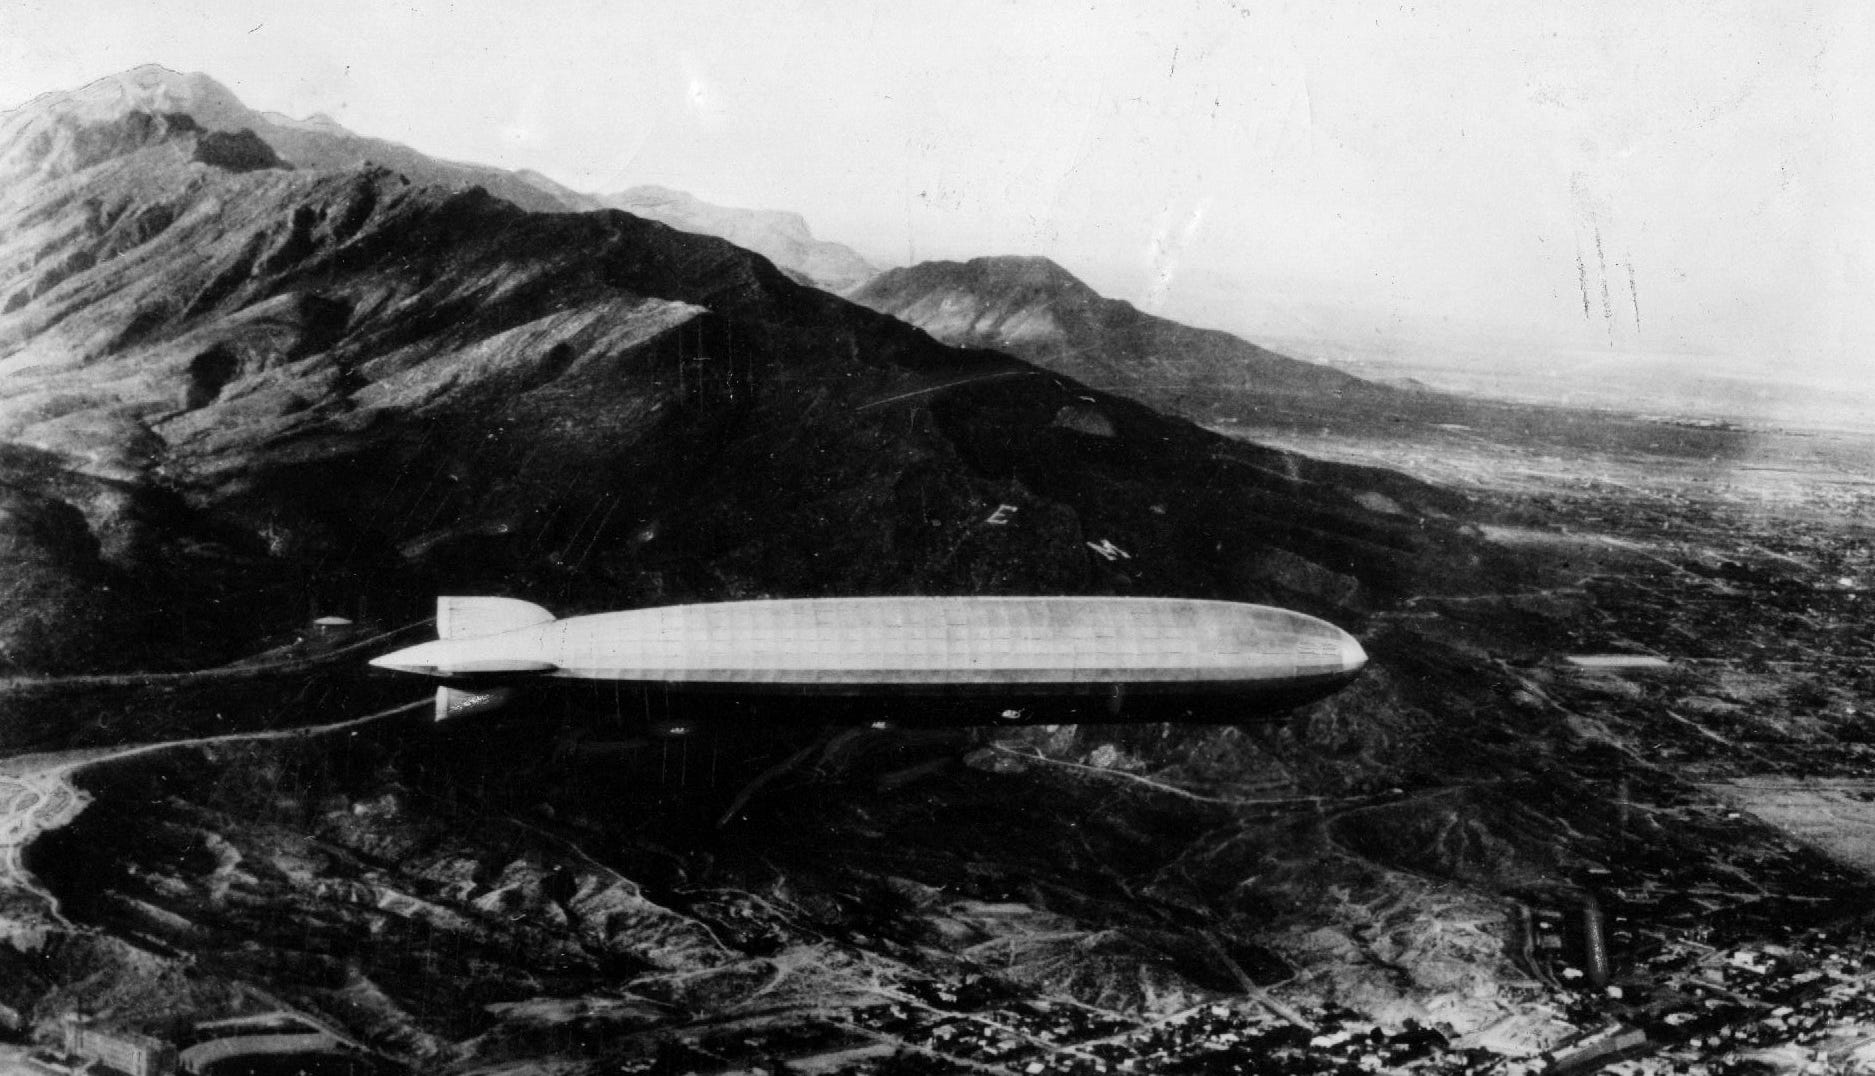 German dirigible, Graf Zepplin, passes over El Paso approximately 5:15 p.m. on 27 Aug 1929, while on a round-the-world flight which took 21 days.